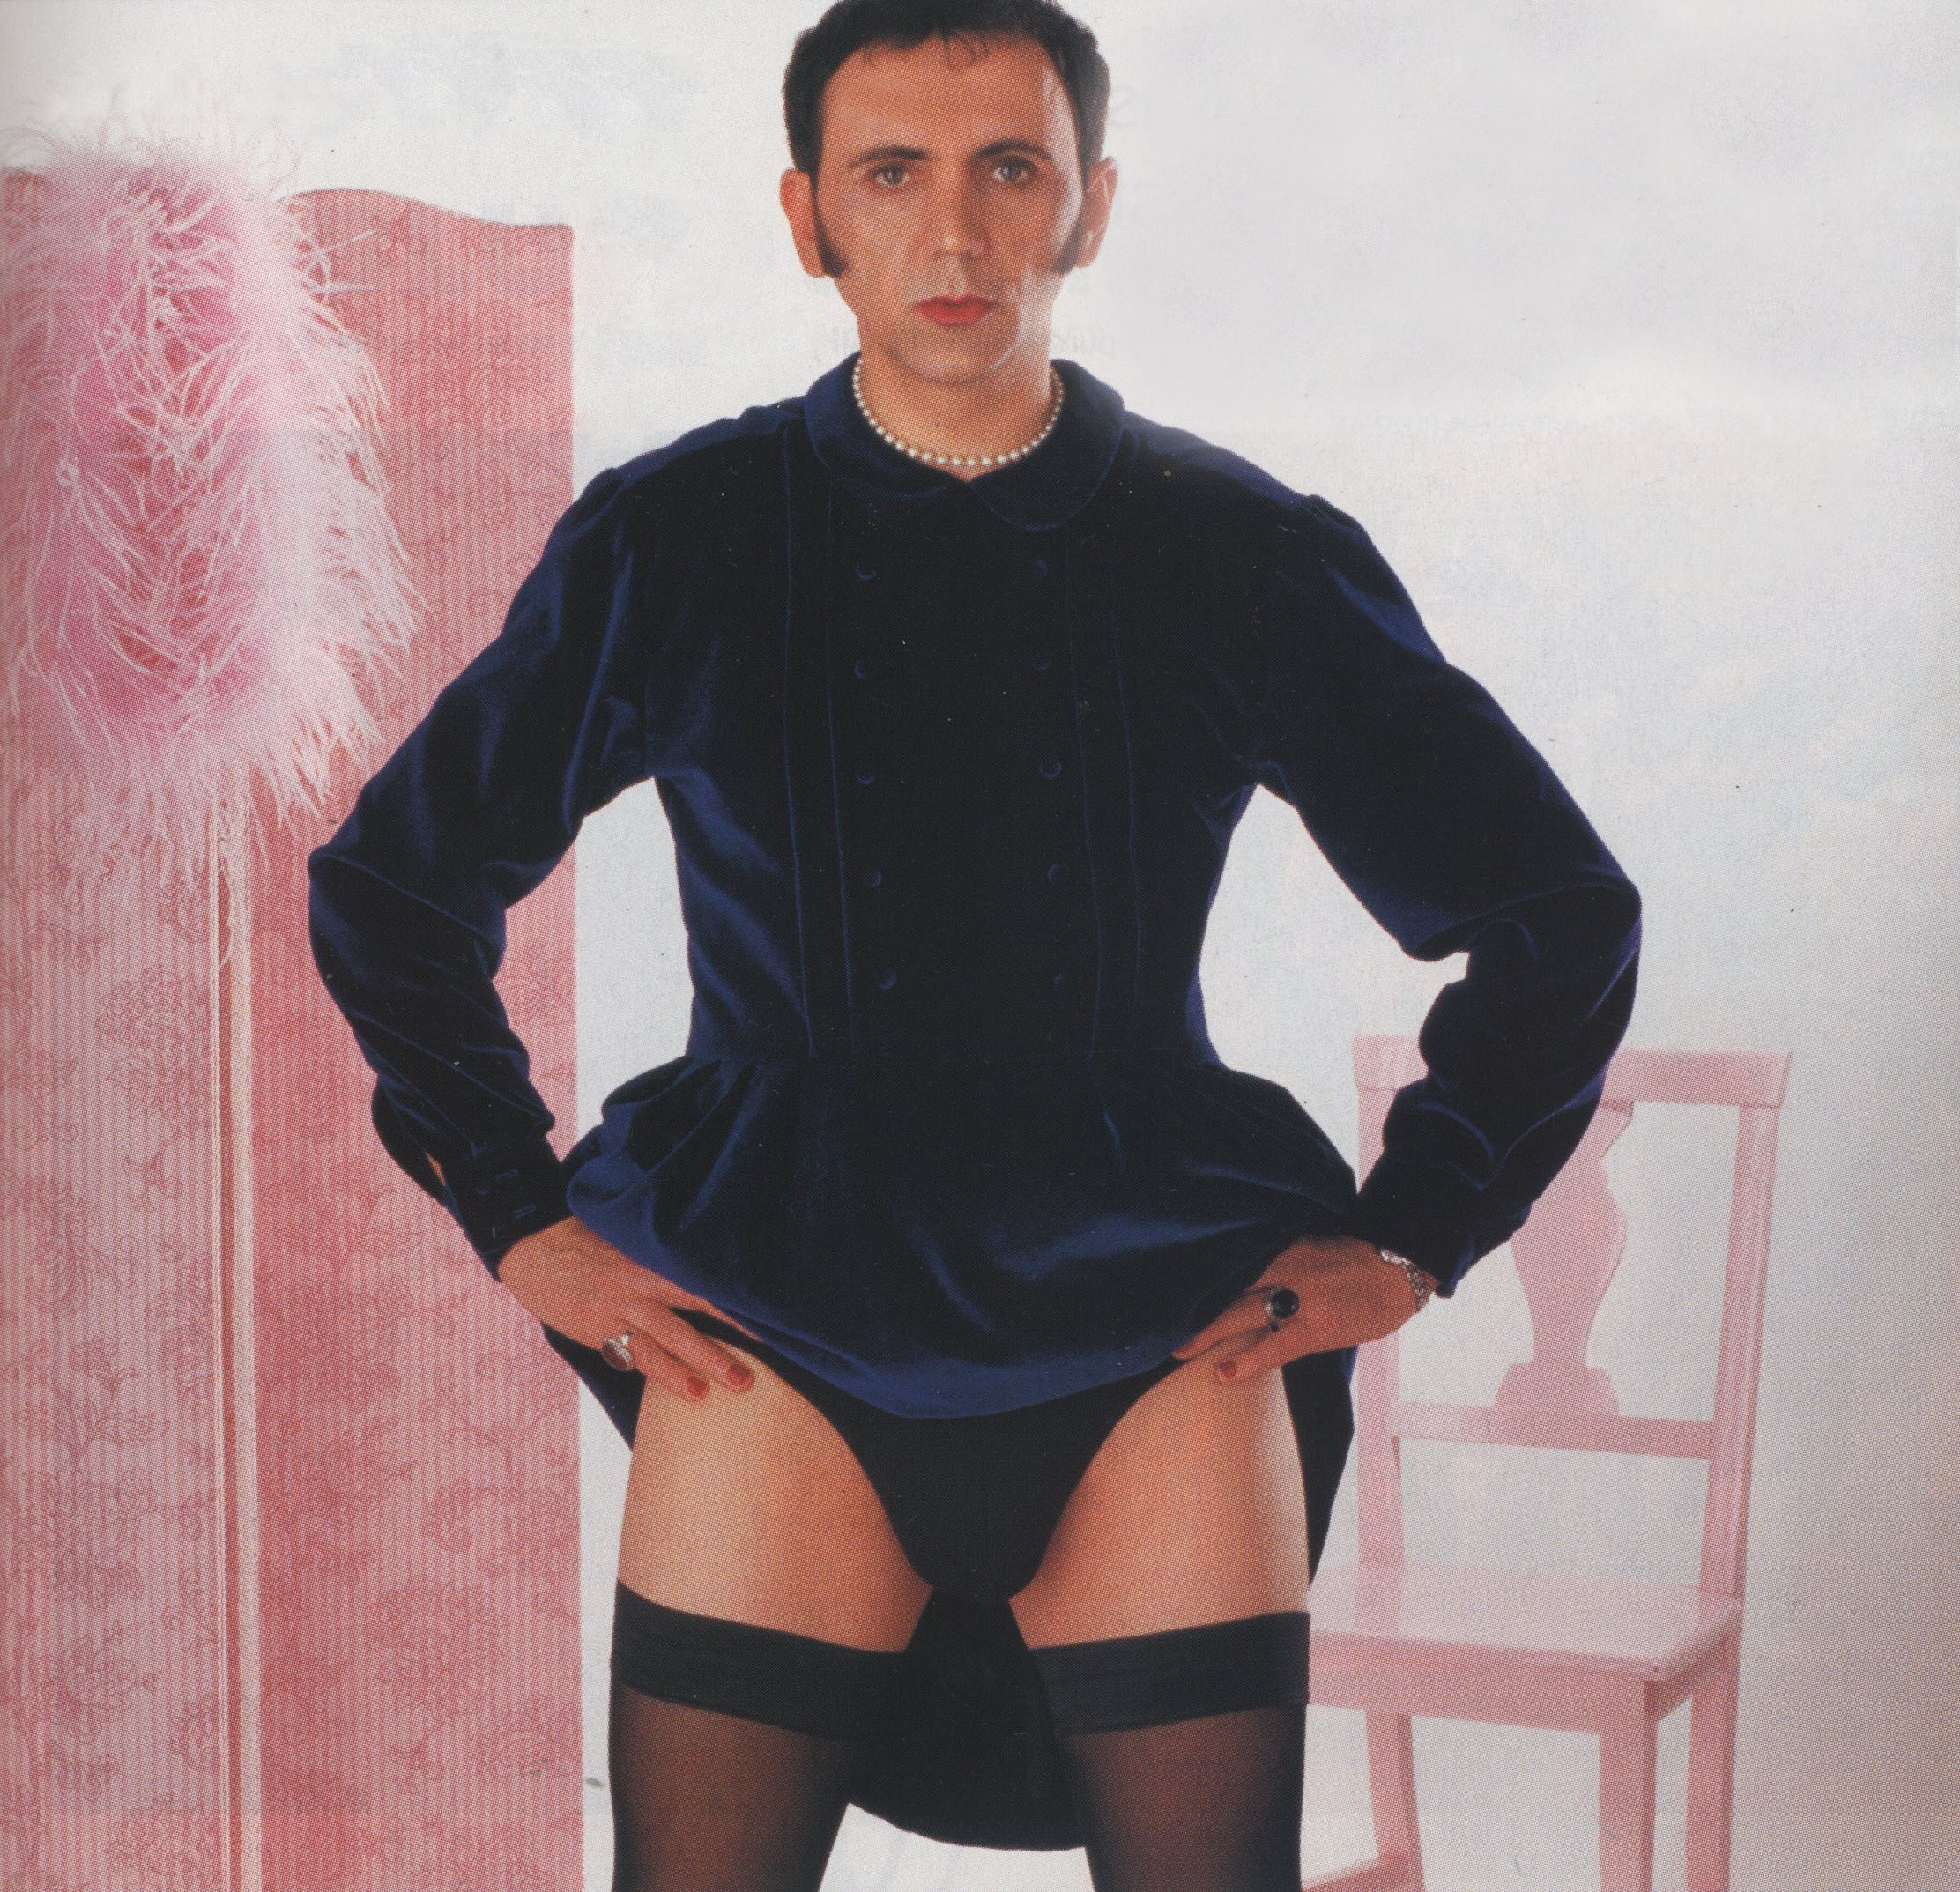 KEVIN ROWLAND | CONCRETE AND CLAY | ALBUM COVER | PHOTOGRAPHY RANKIN | DAZED & CONFUSED 58 | SEPT.1999